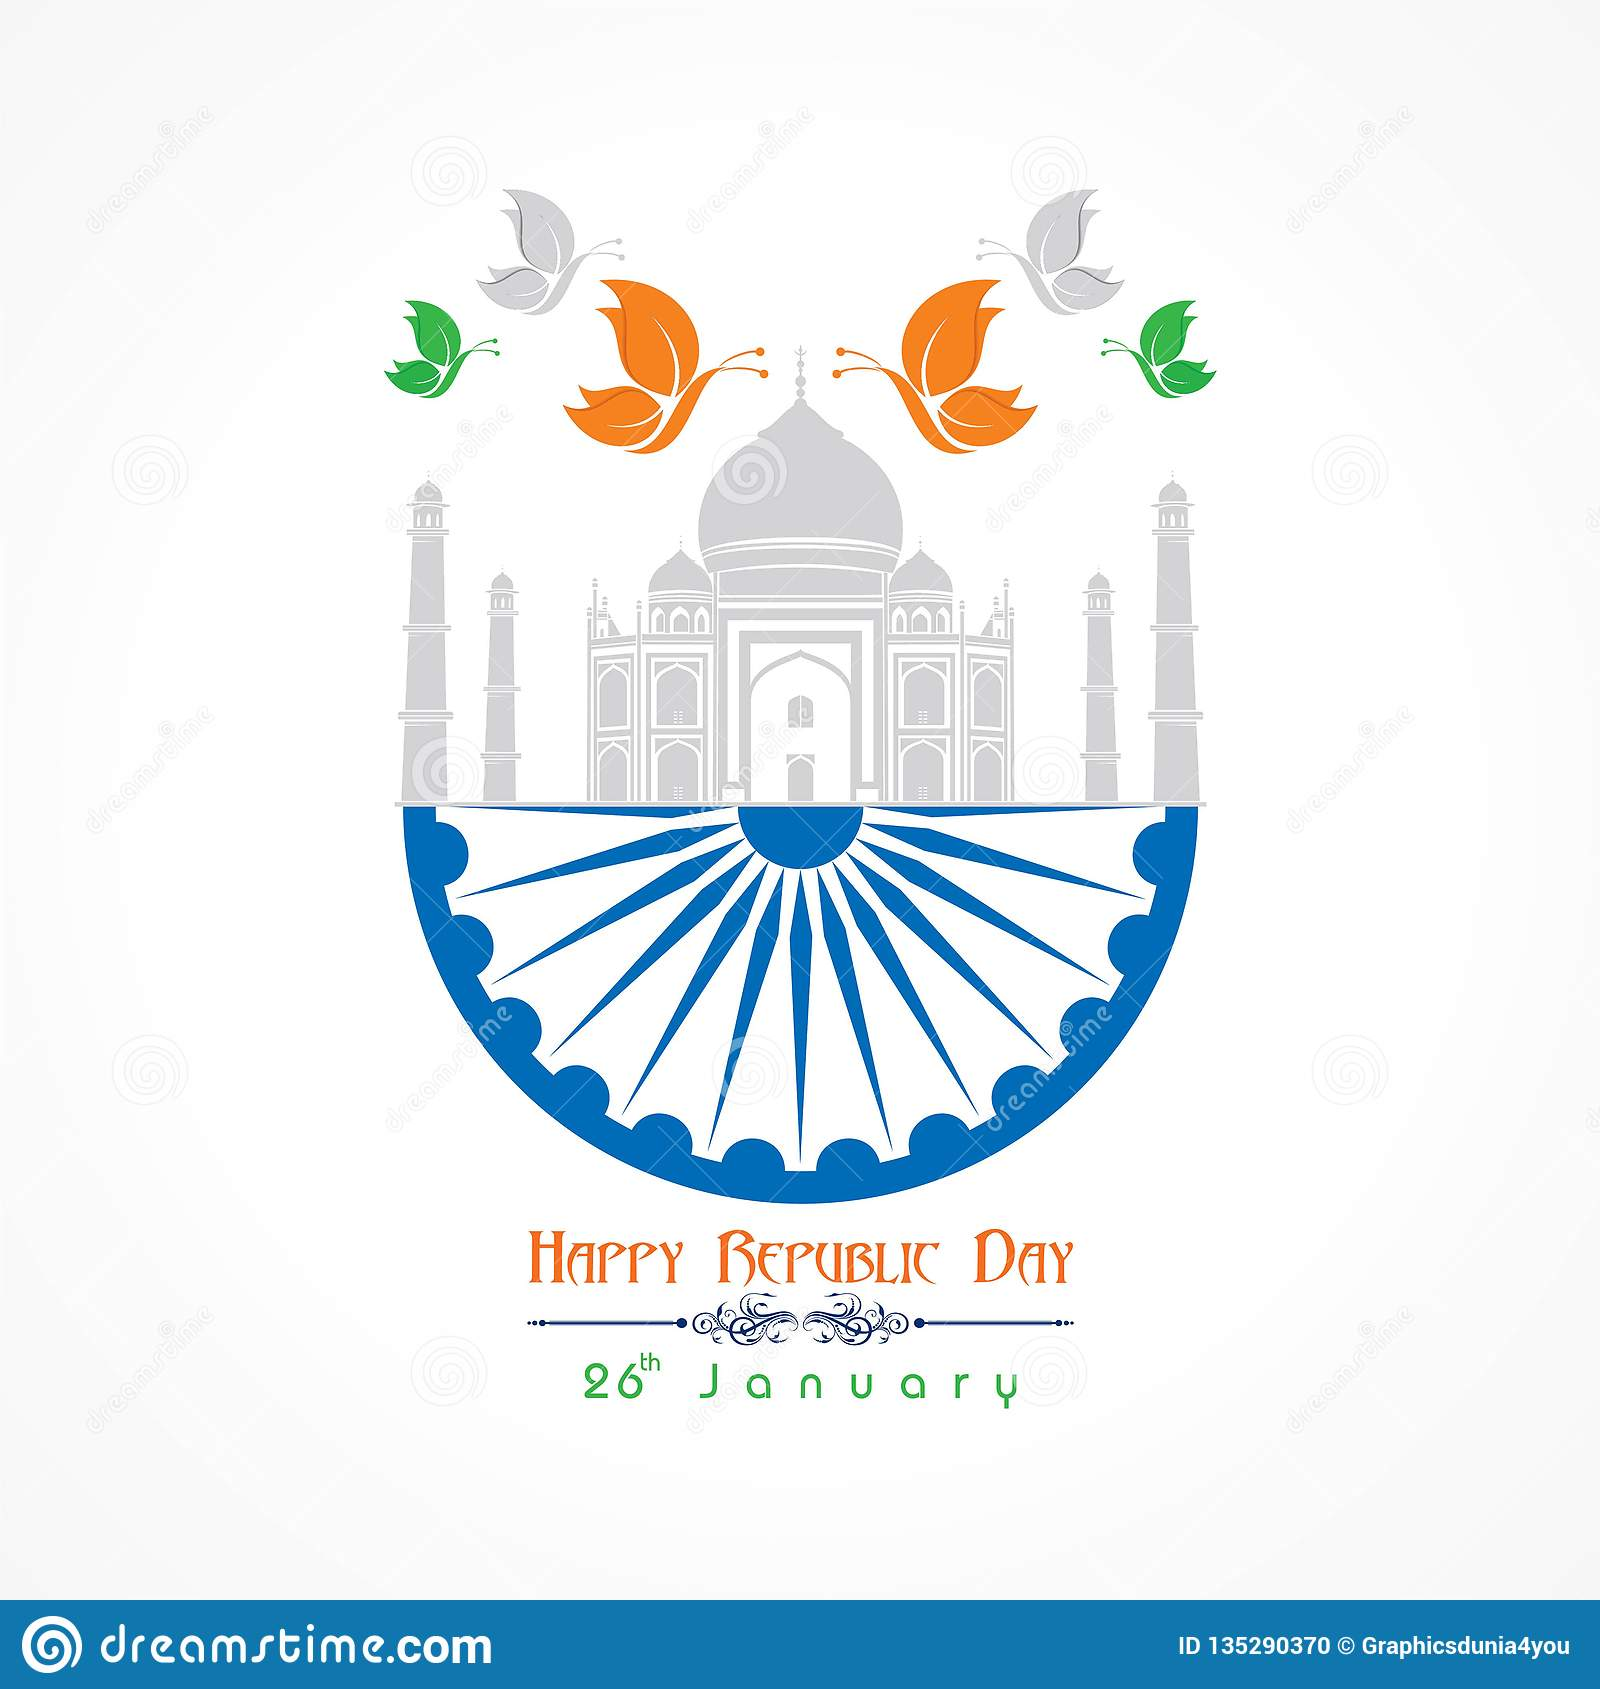 Happy Republic Day Of India Illustration Vector, Poster